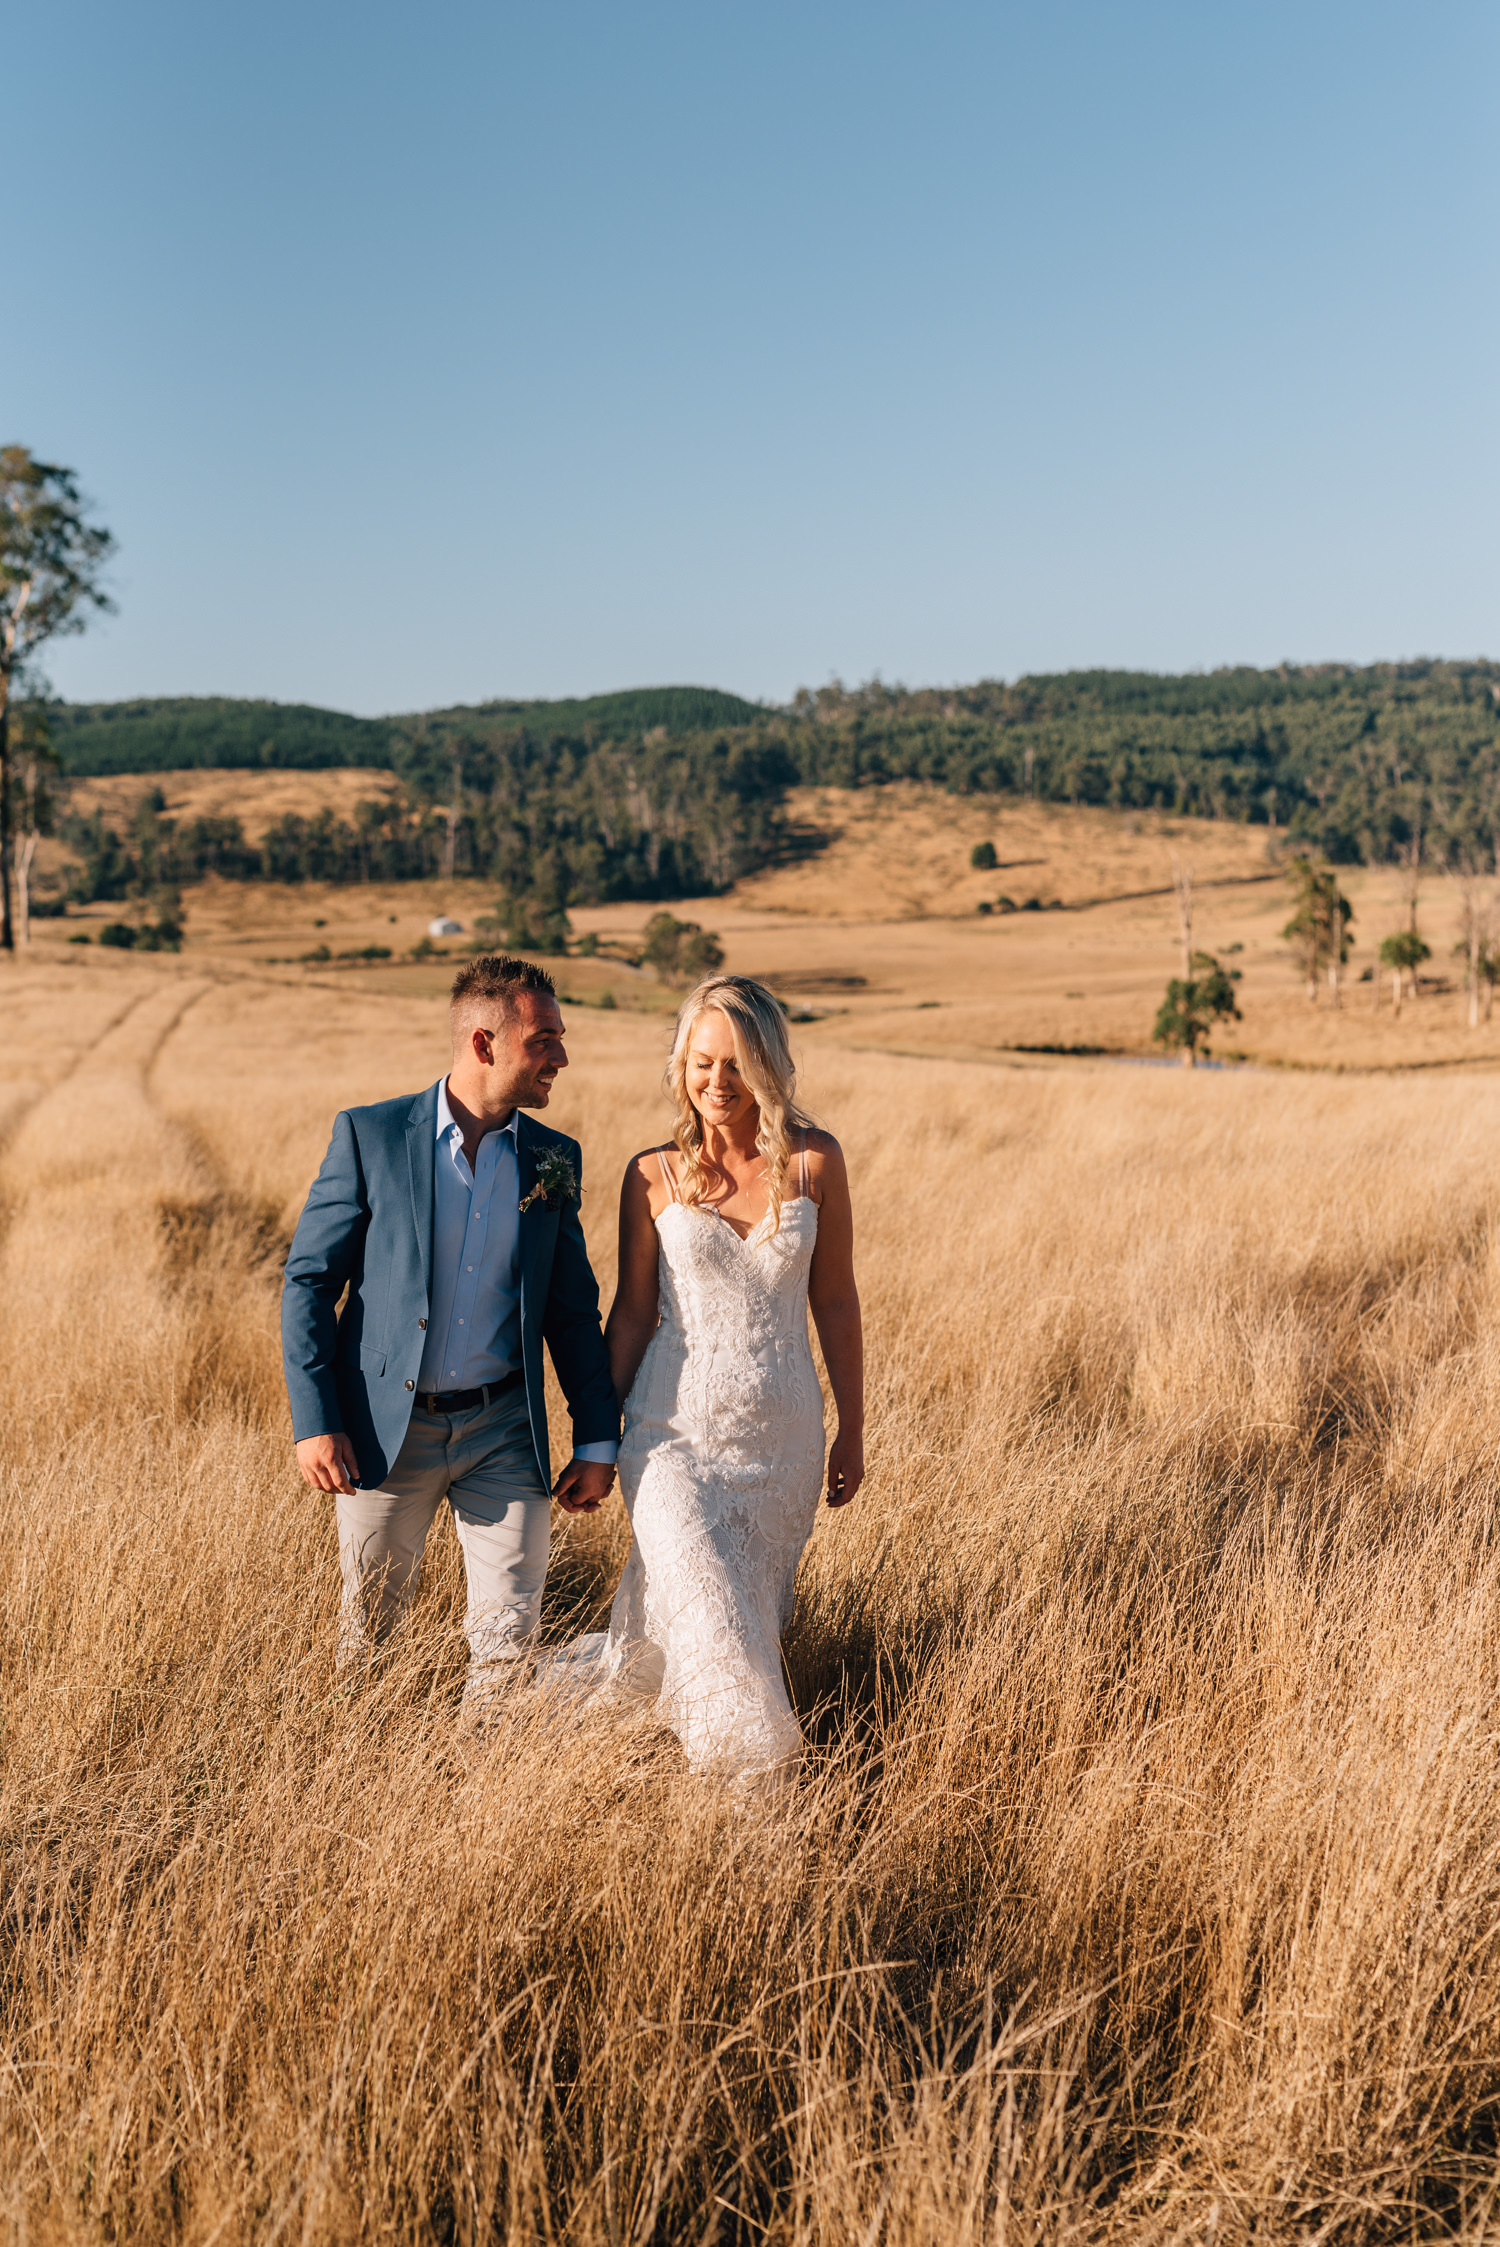 Launceston-Wedding-Photographer-85.jpg